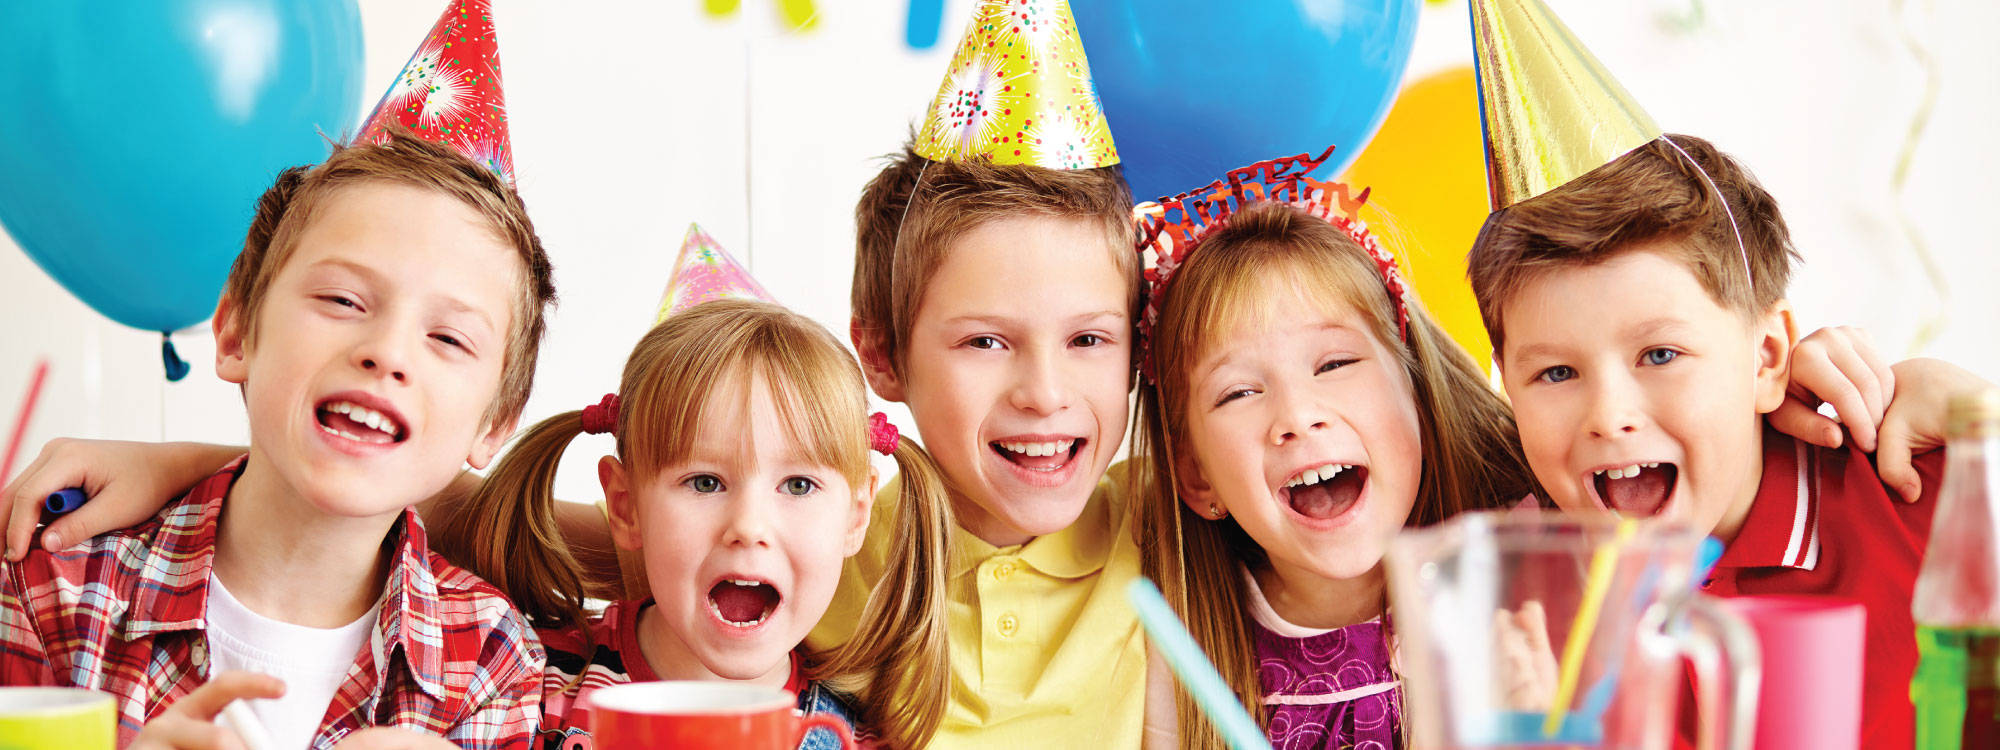 Birthday Party Ideas And Themes For Your 13-year-old